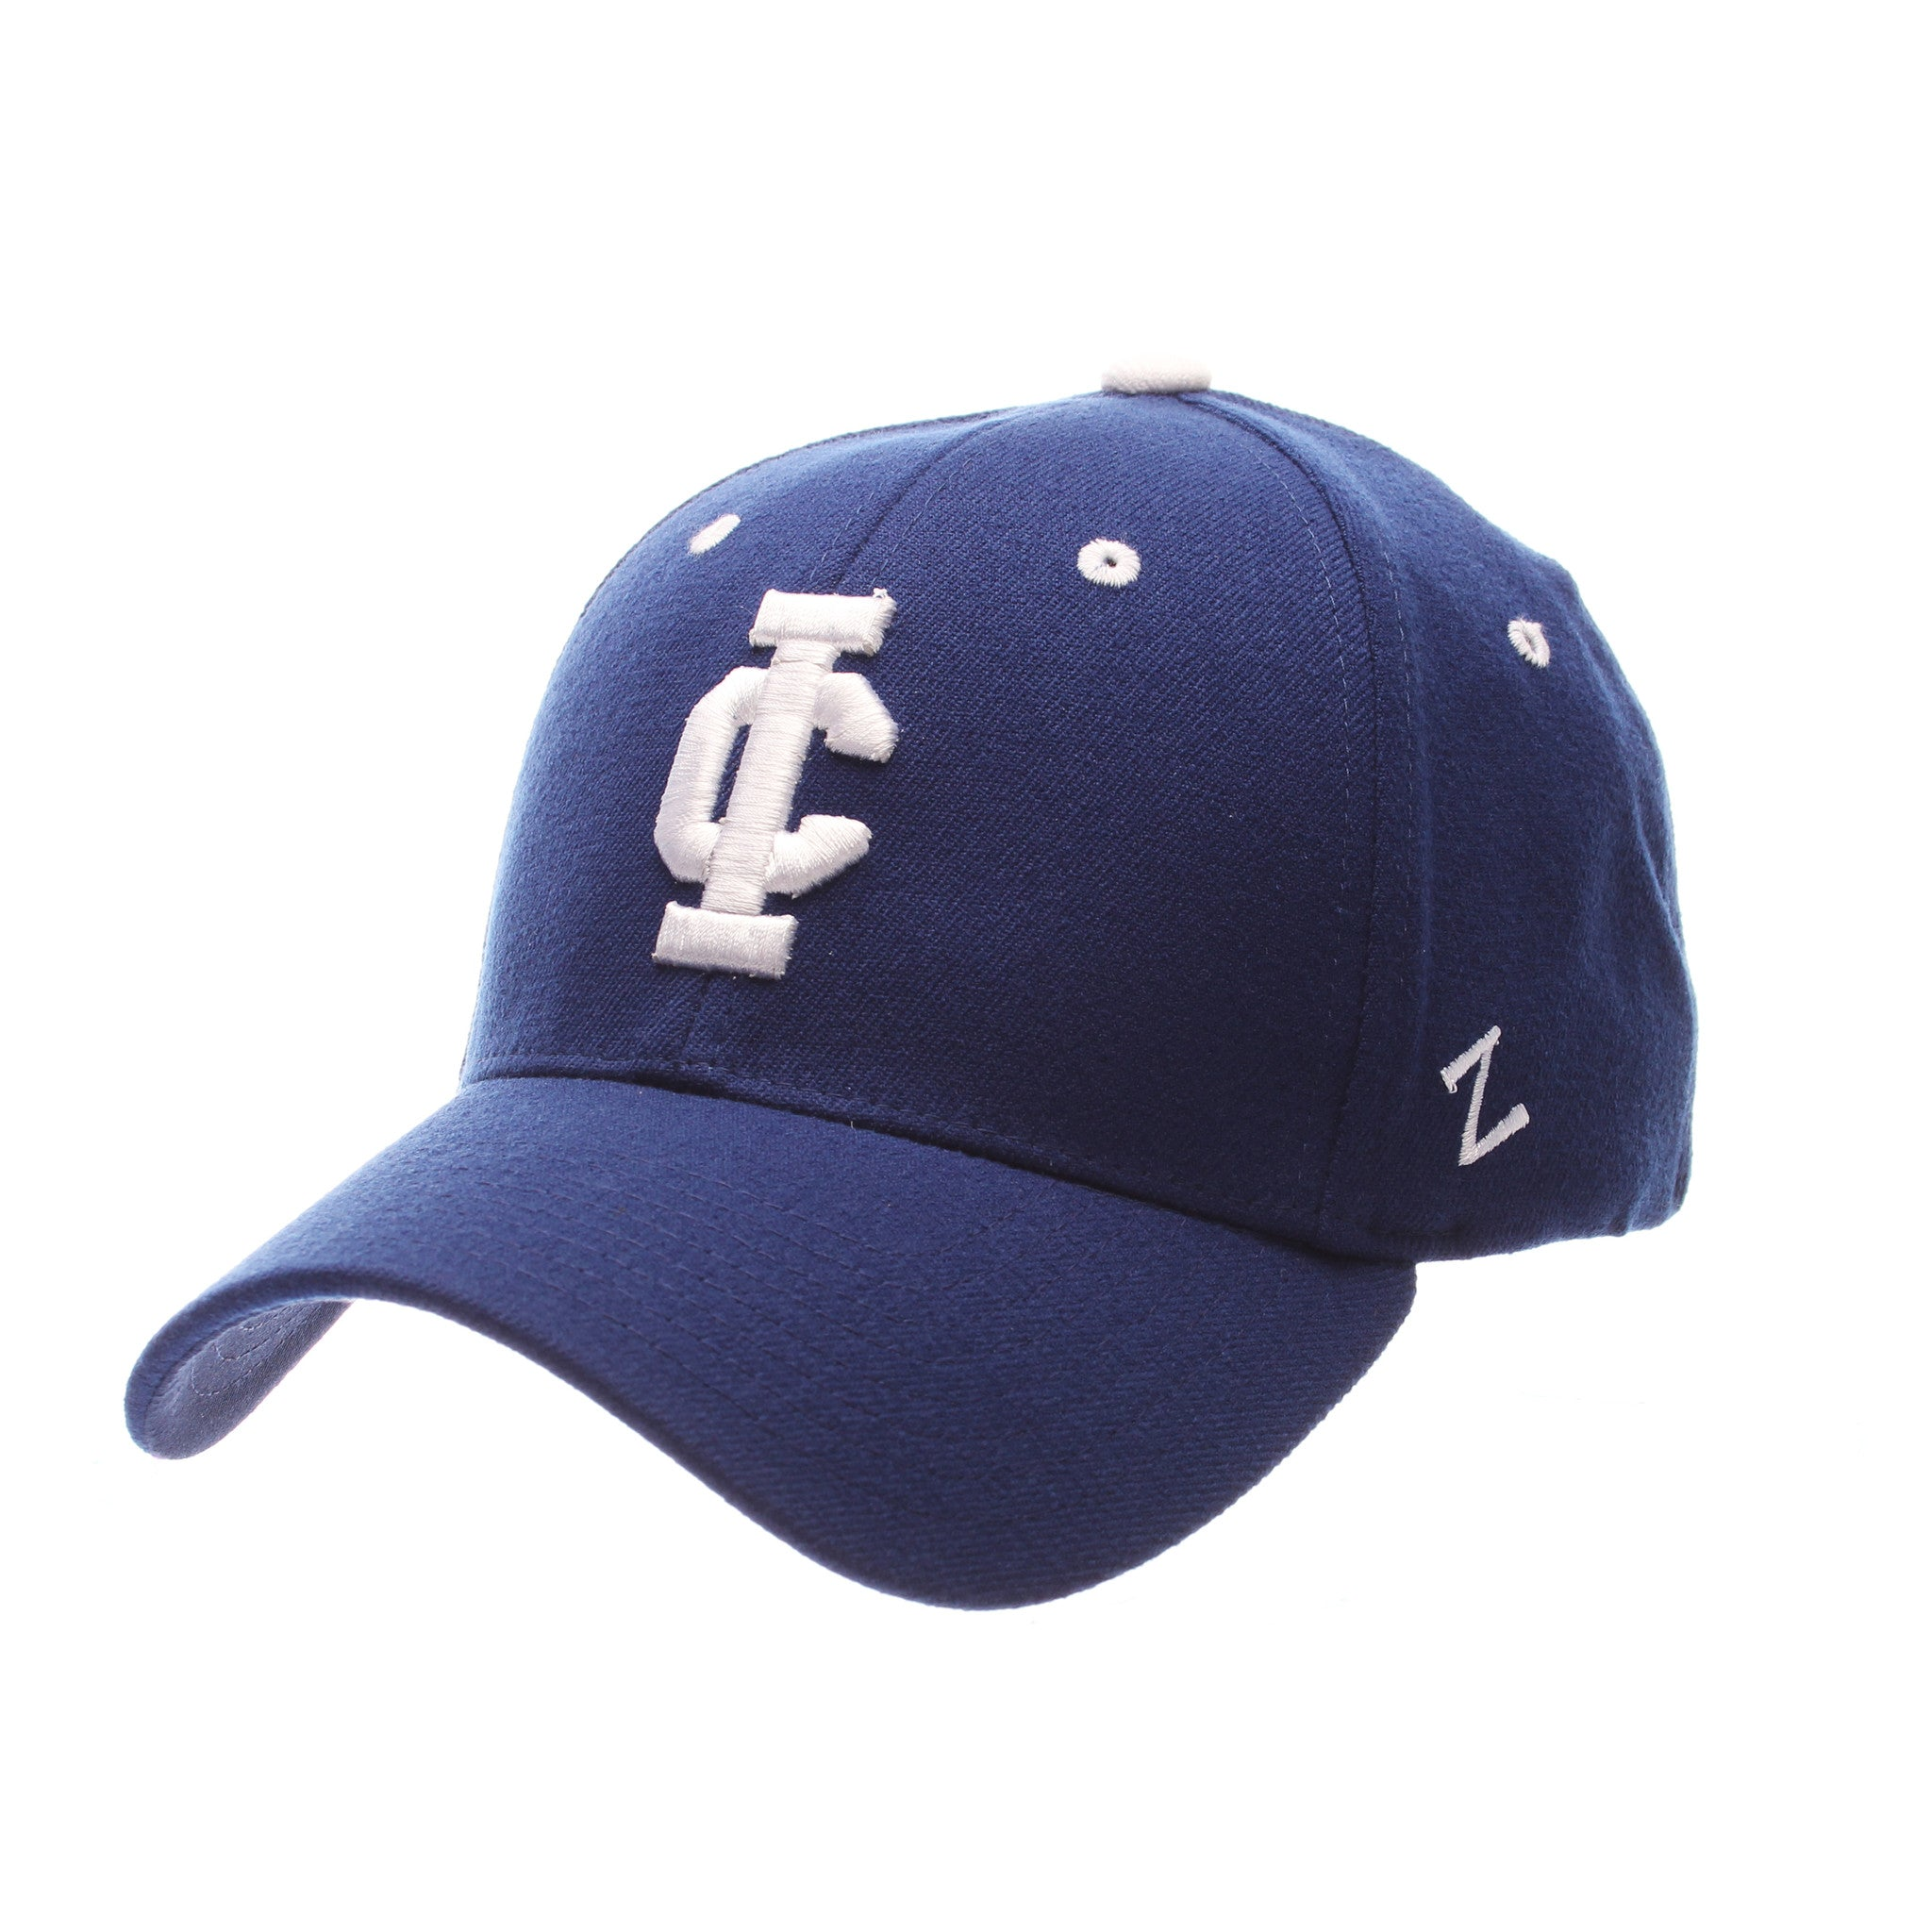 Illinois College (Jacksonville) ZH Standard (Low) (FTBL IC) Royal Dark Zwool Stretch Fit hats by Zephyr